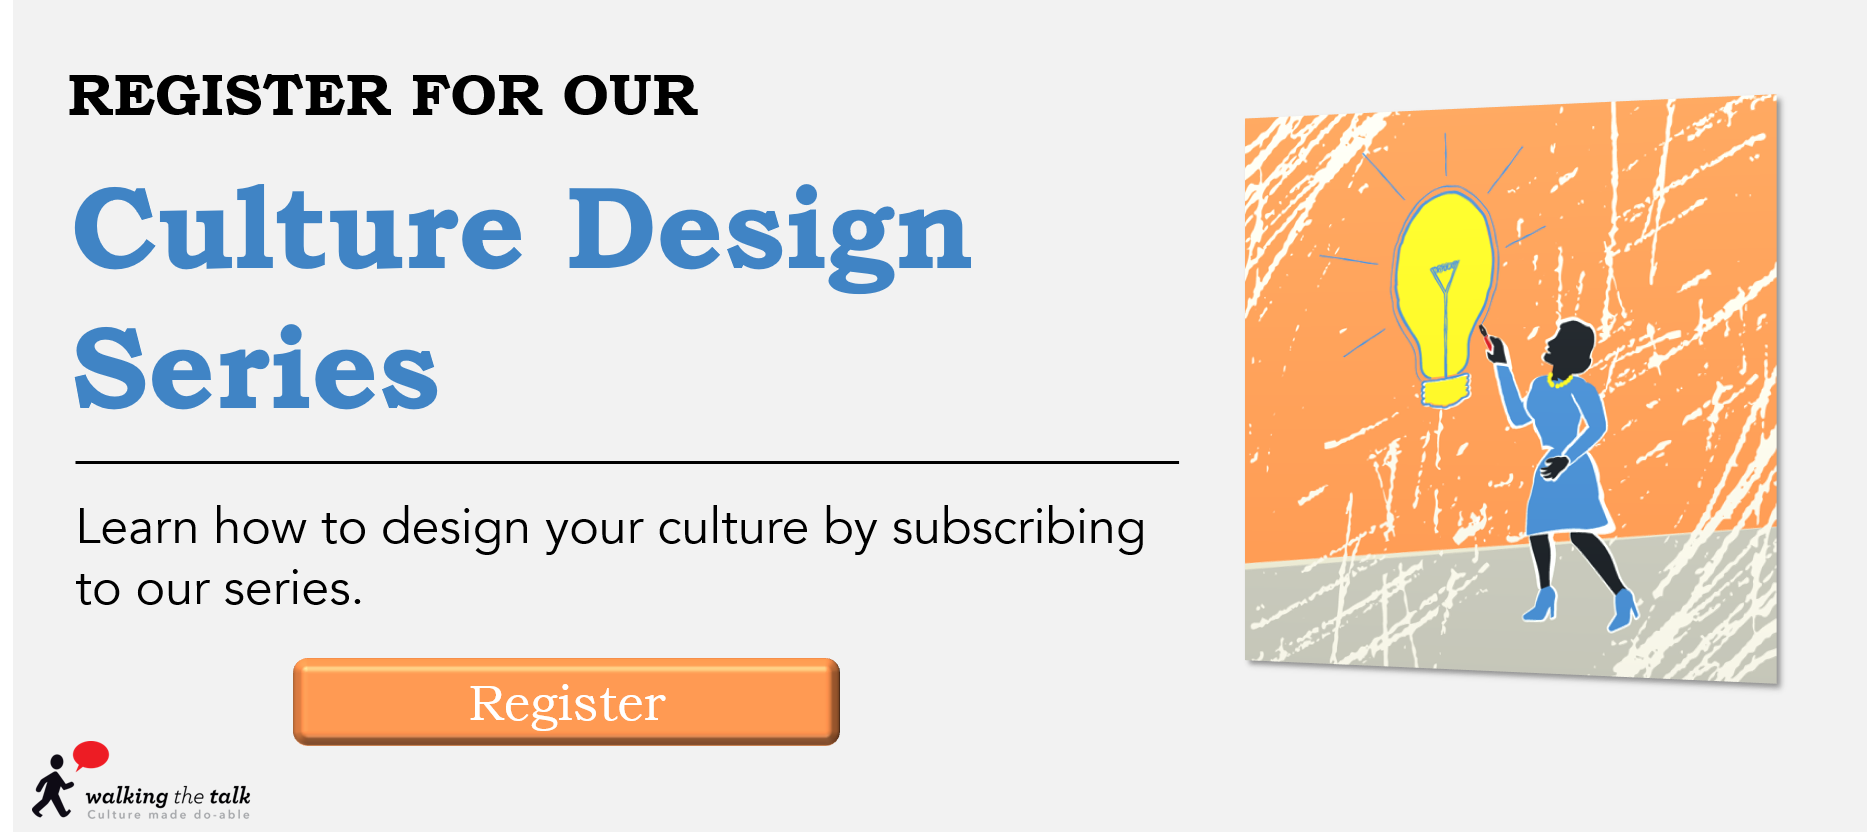 Design and change your organisational culture